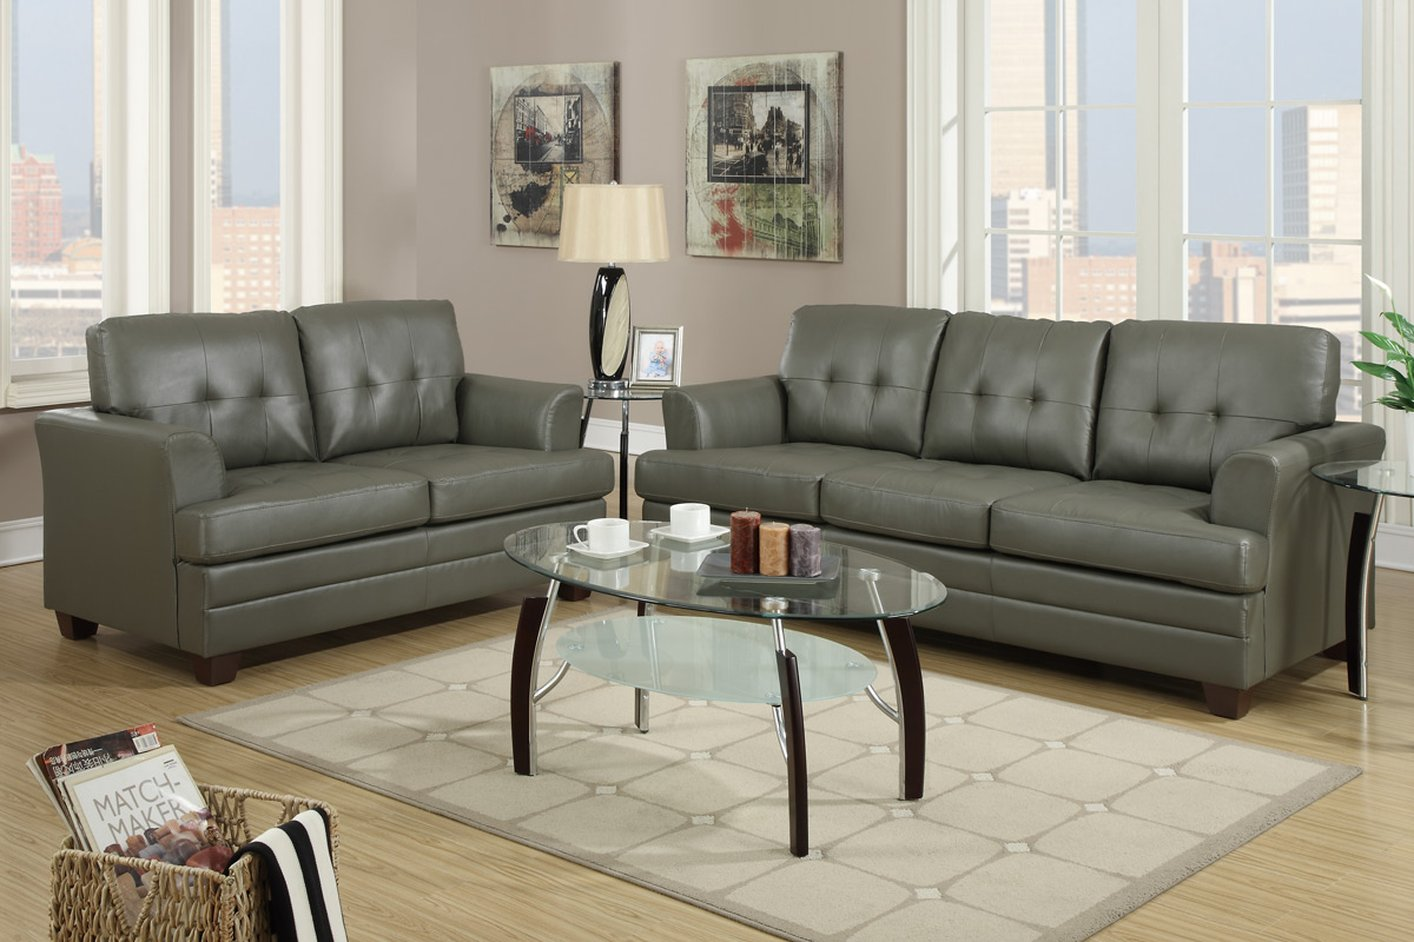 leather sofa gray images